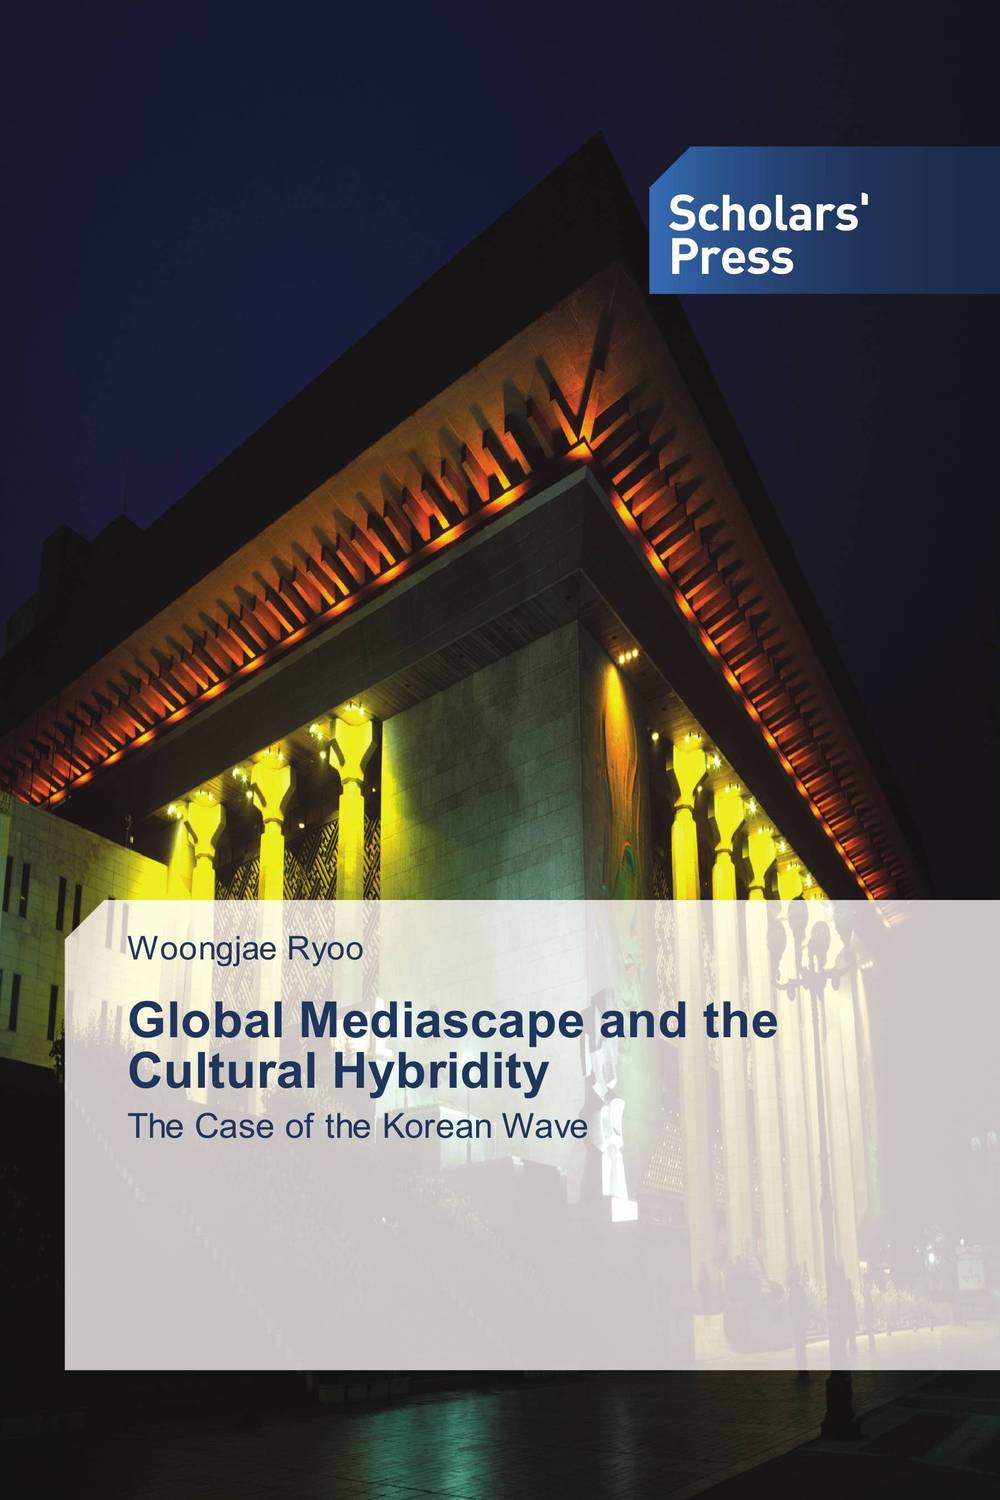 Global Mediascape and the Cultural Hybridity cultural and linguistic hybridity in postcolonial text